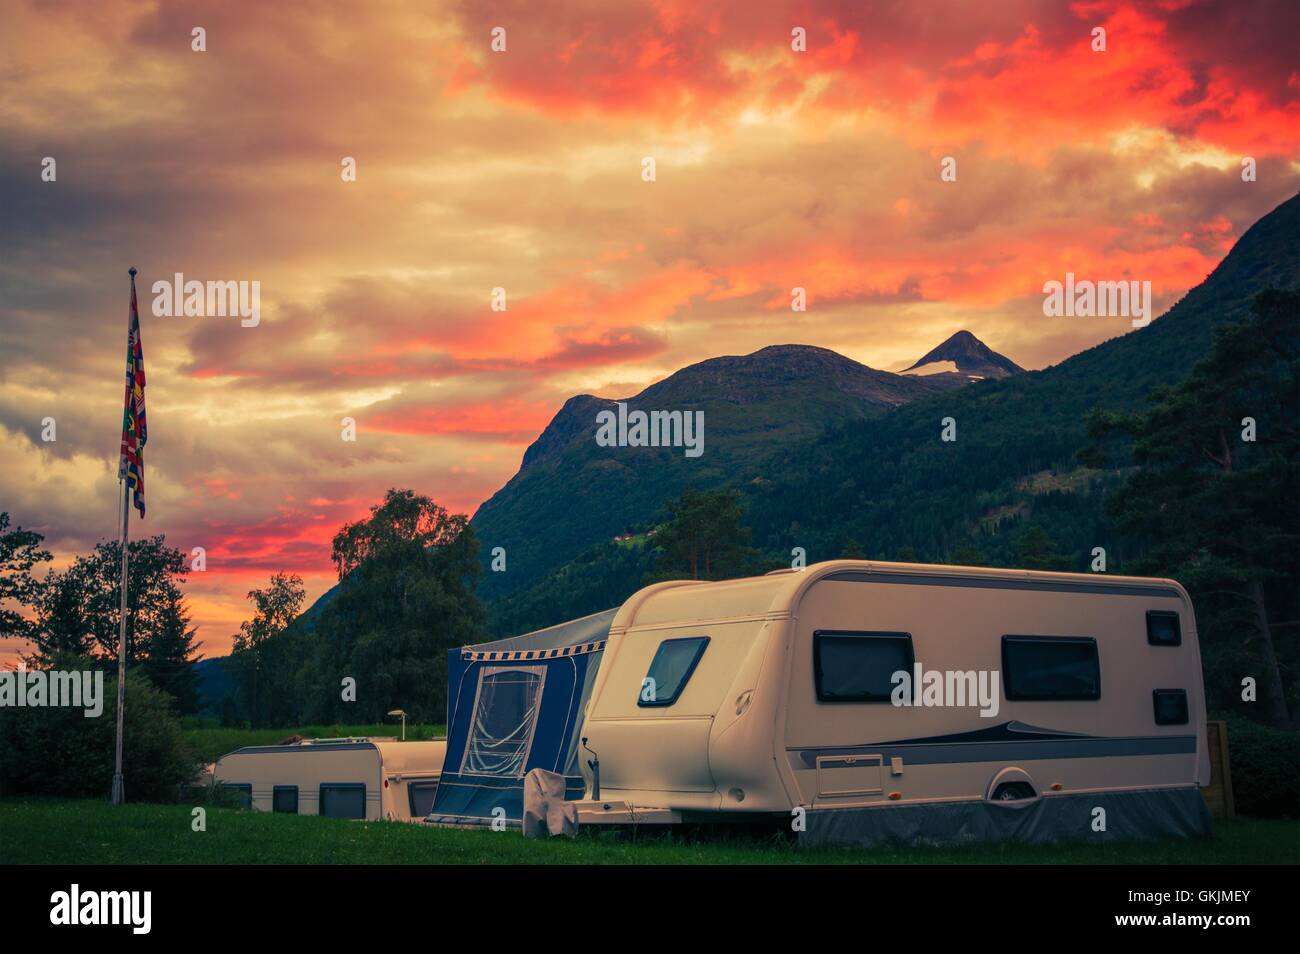 Scenic Camping Sunset. Sunset Sky Over Campground with Travel Trailers. Campsite Caravan Camping. - Stock Image